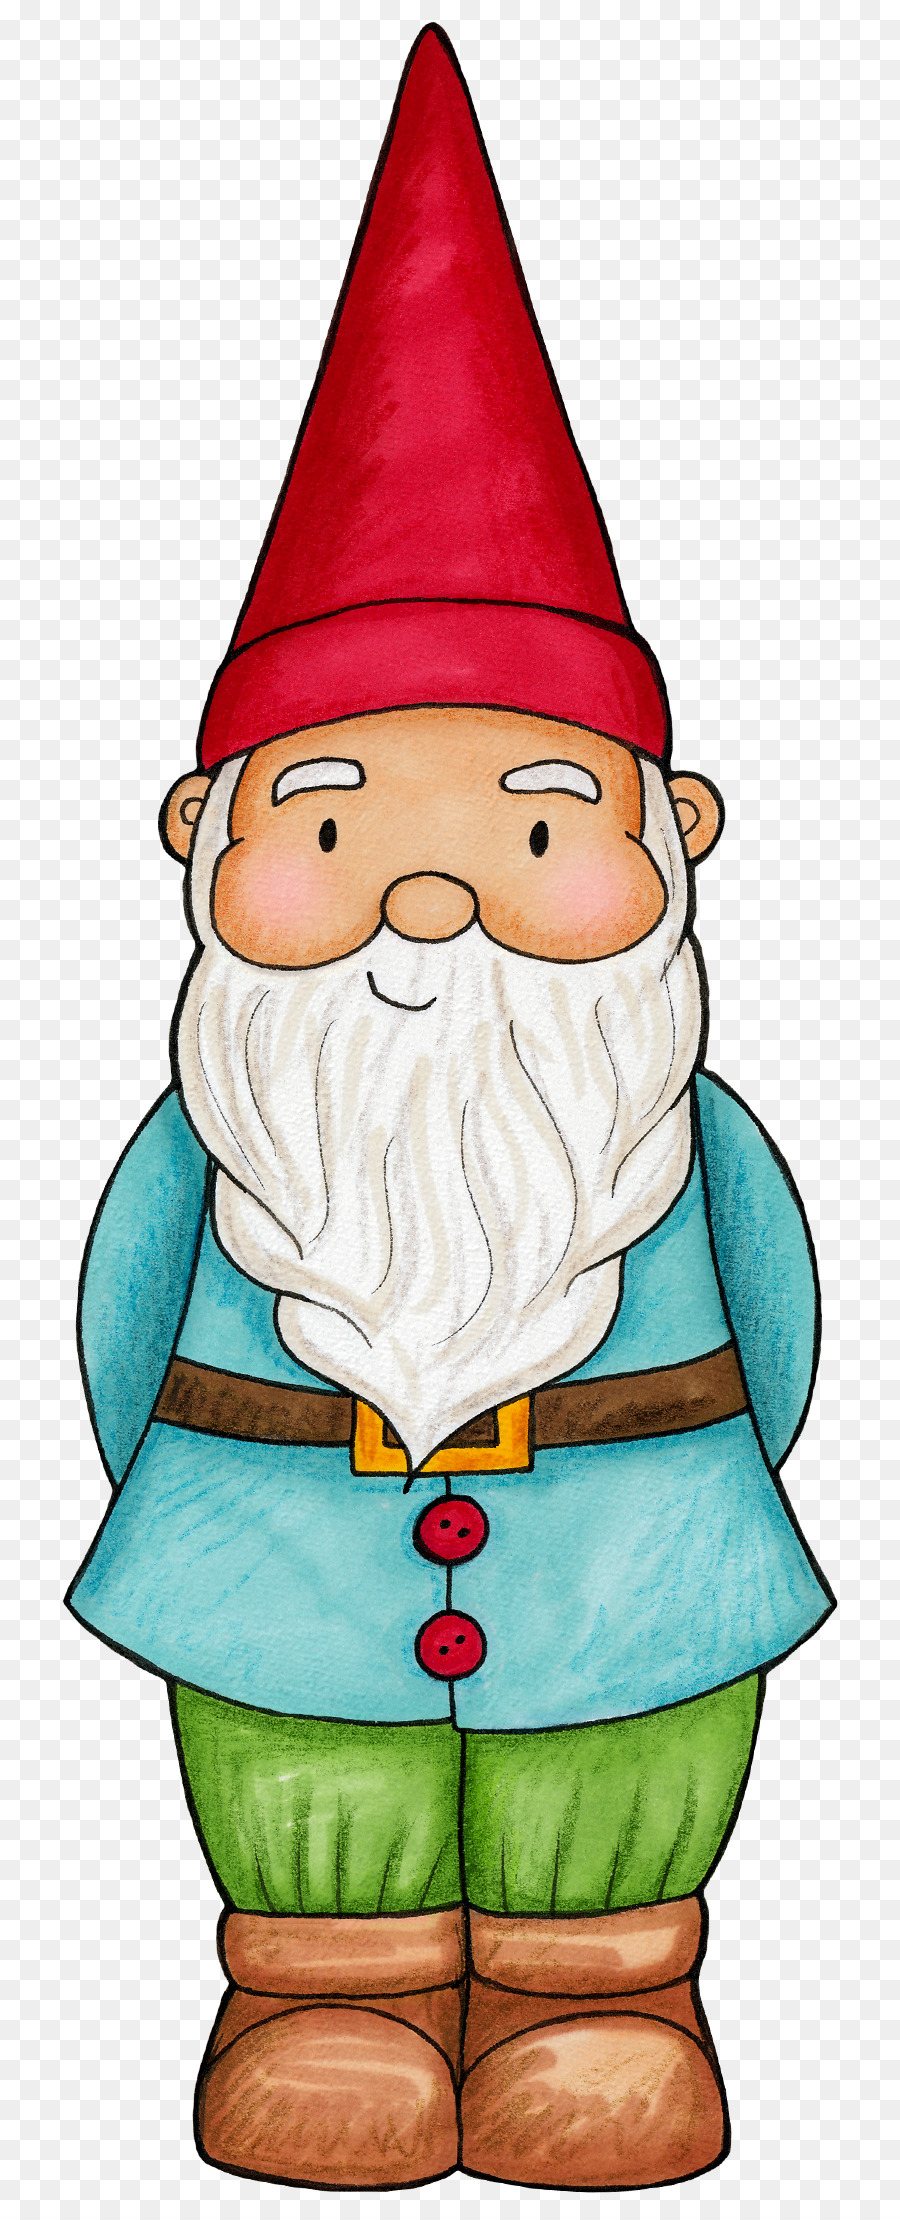 Christmas Gnome Drawing.Christmas Tree Drawing Png Download 792 2215 Free